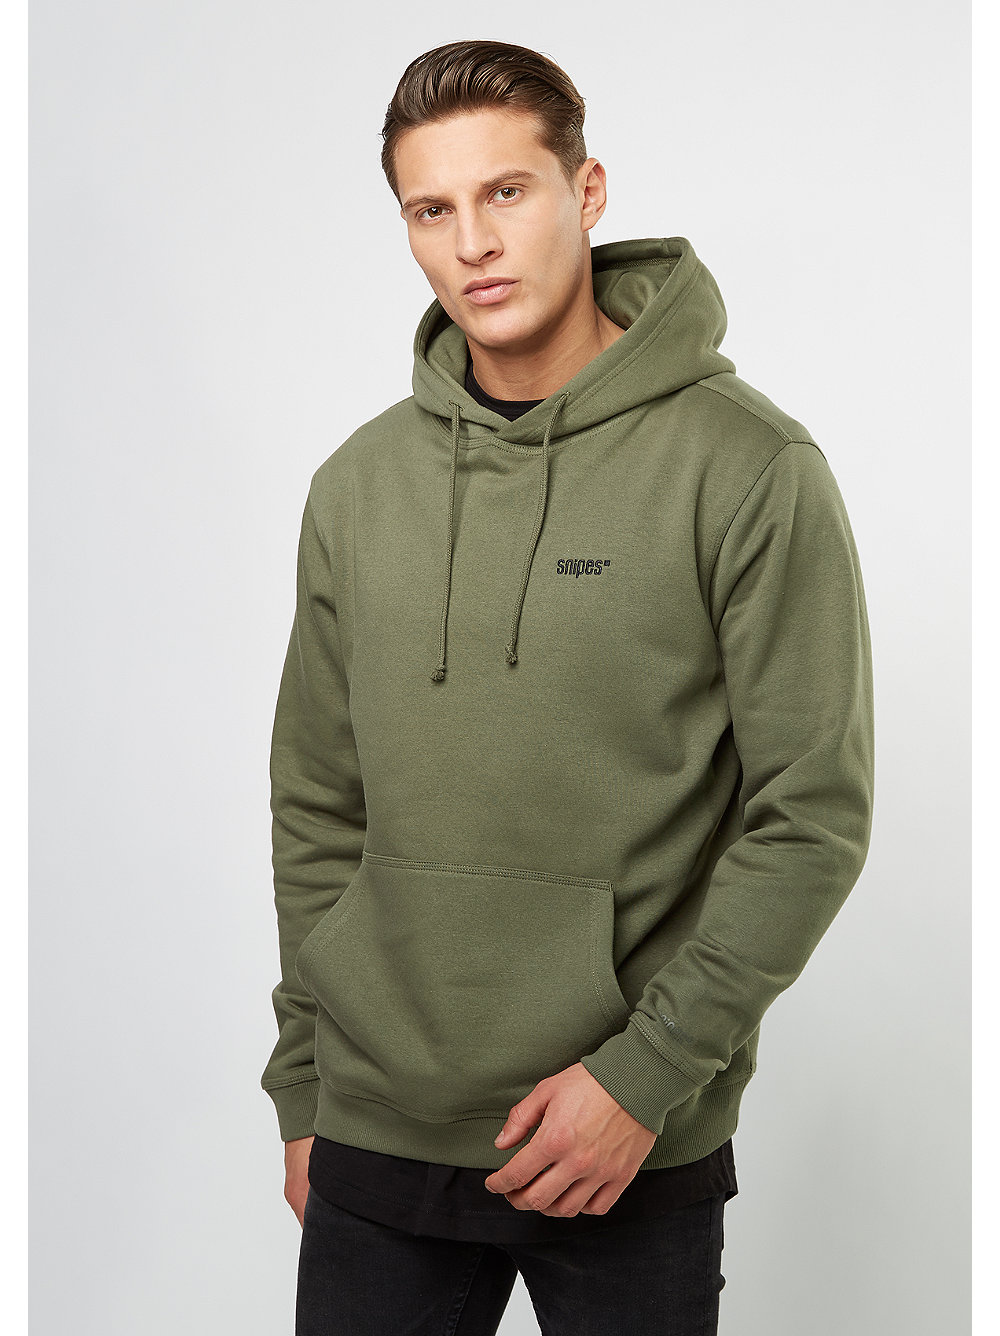 snipes hooded sweatshirt chest logo olive night snipes. Black Bedroom Furniture Sets. Home Design Ideas